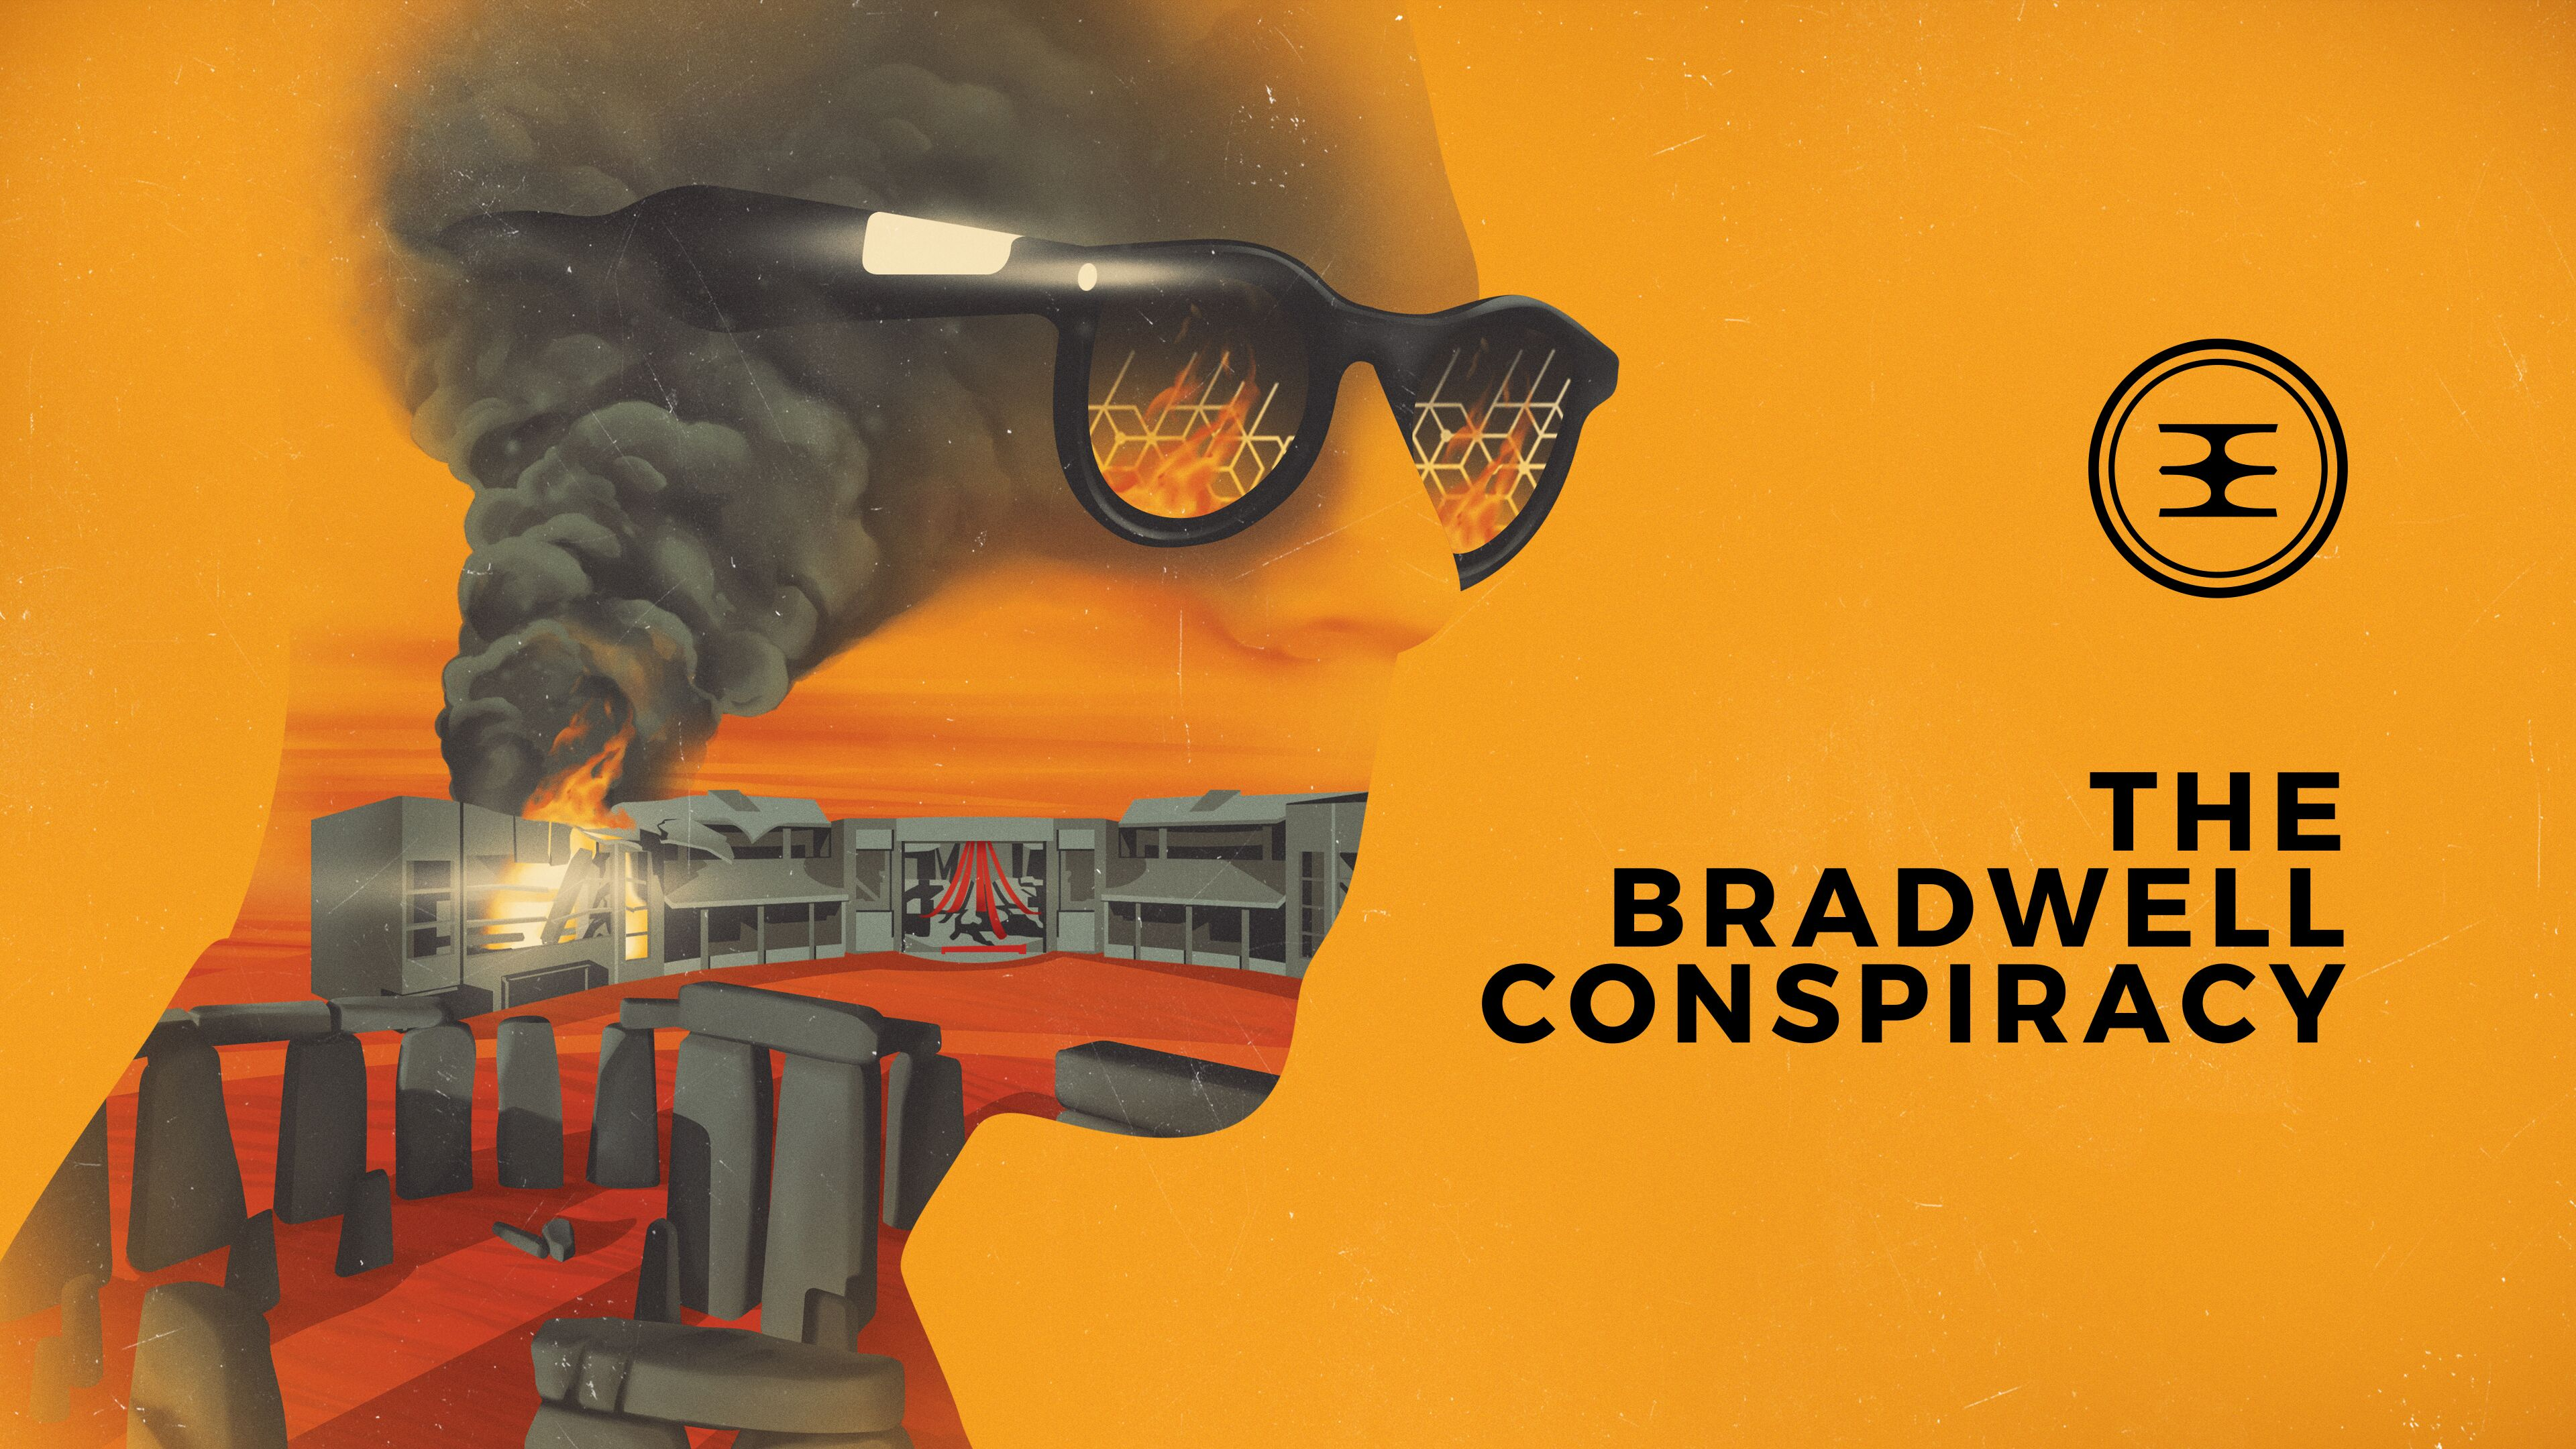 Contest: Get To The Bottom Of The Bradwell Conspiracy